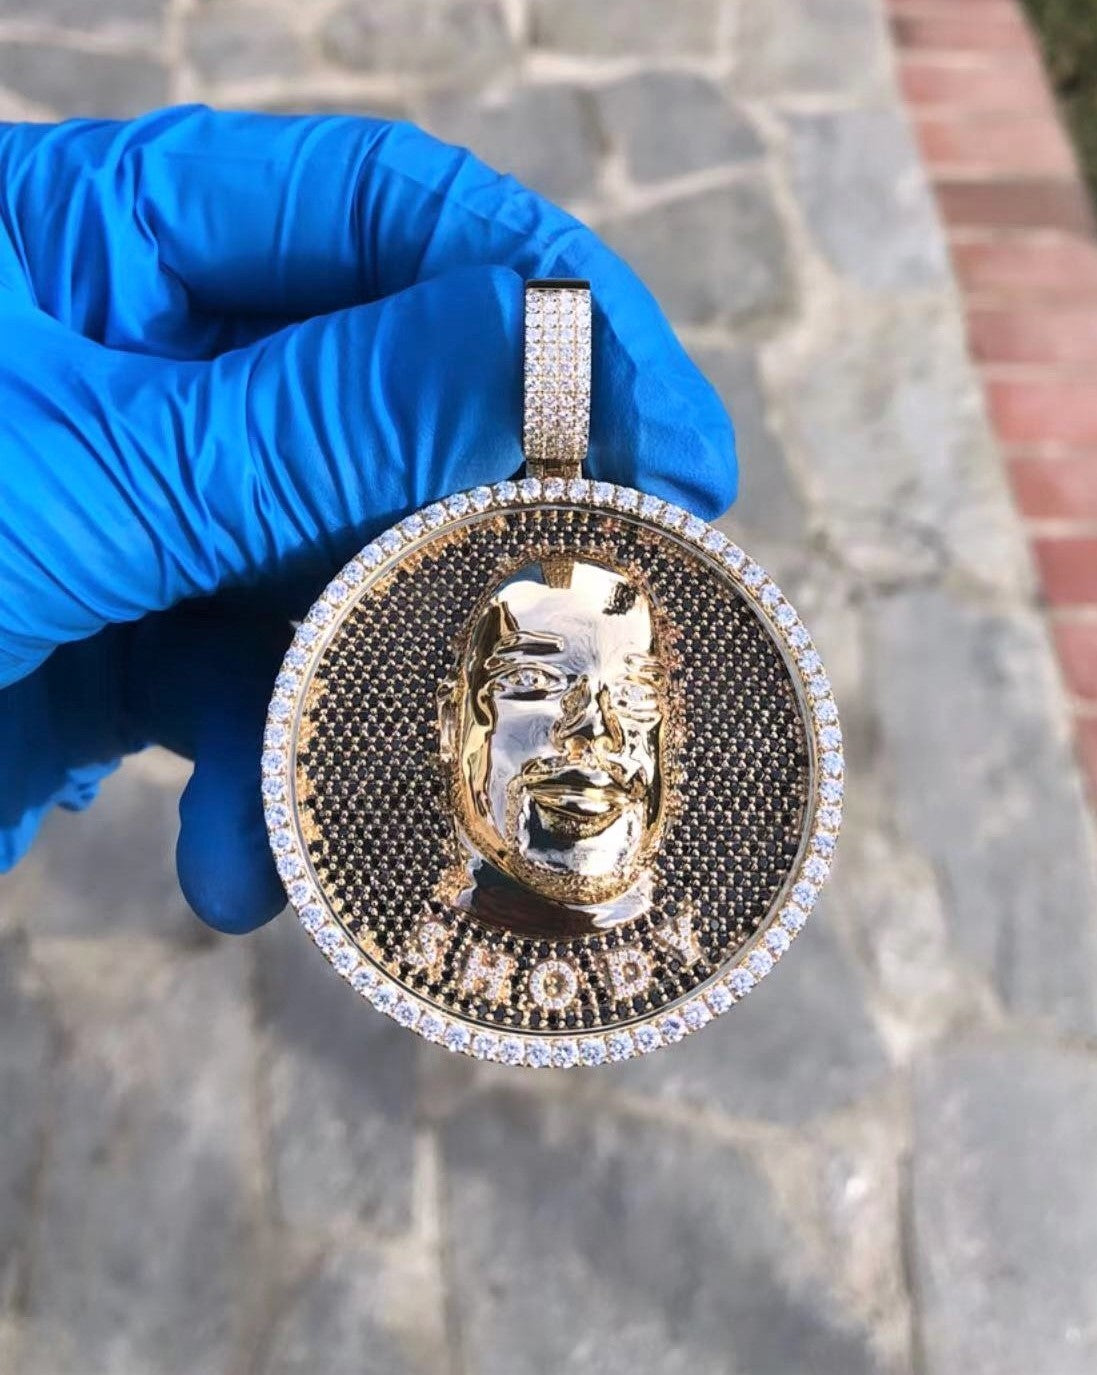 The W Brothers custom jewelry vvs diamonds d color vs diamonds si diamonds custom solid gold jewelry custom silver jewelry solid sterling silver 14k gold 18k gold 22k gold 24k gold thewbros iced out pendant iced out jewelry